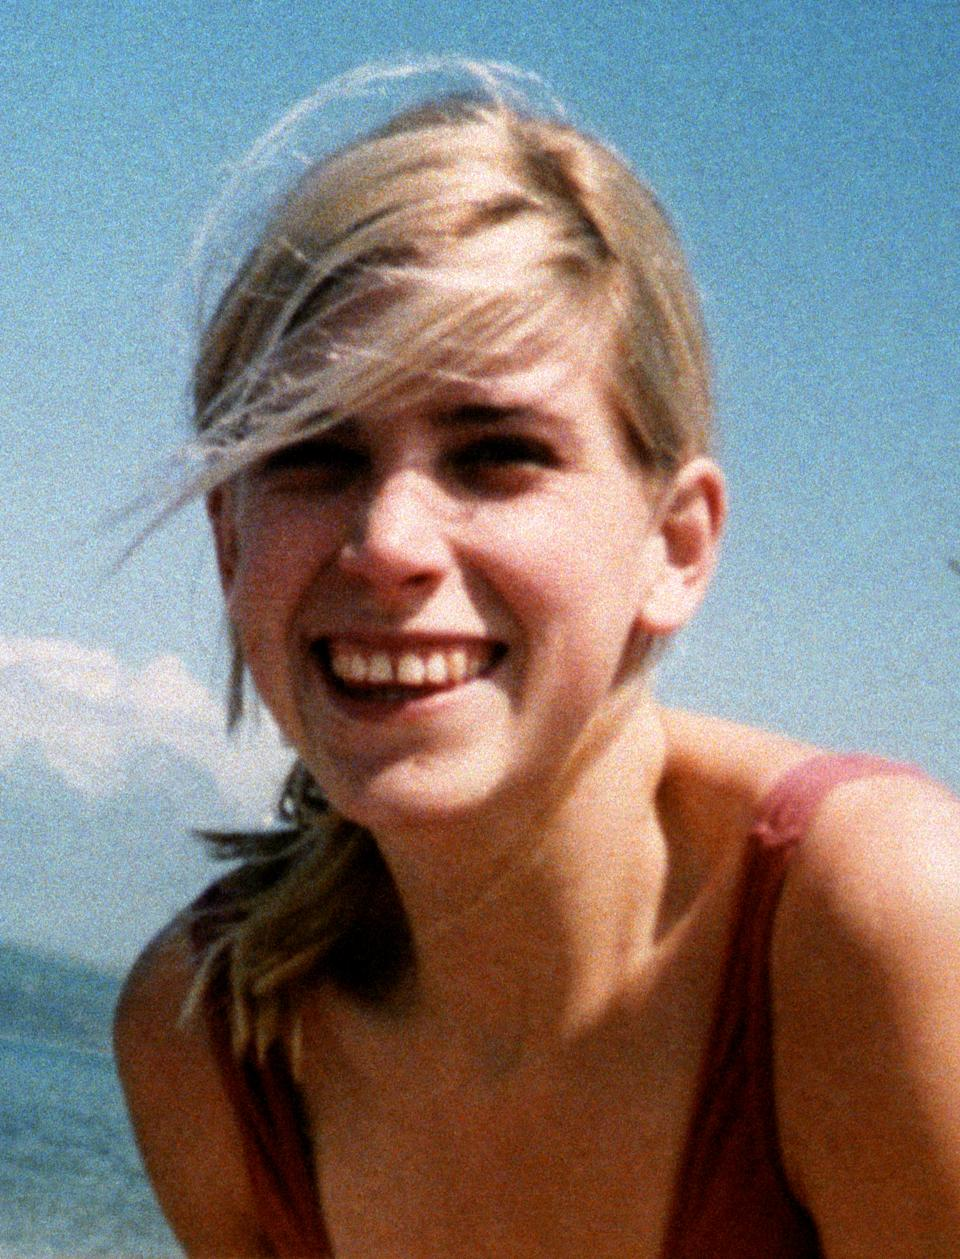 Rachel Nickell, who was brutally murdered on Wimbledon Common, in London, in 1992. 18/10/1998: Colin Stagg, the man cleared of murdering Rachel on Wimbledon Common,   has defended selling his story for thousands of pounds.  * ...saying: